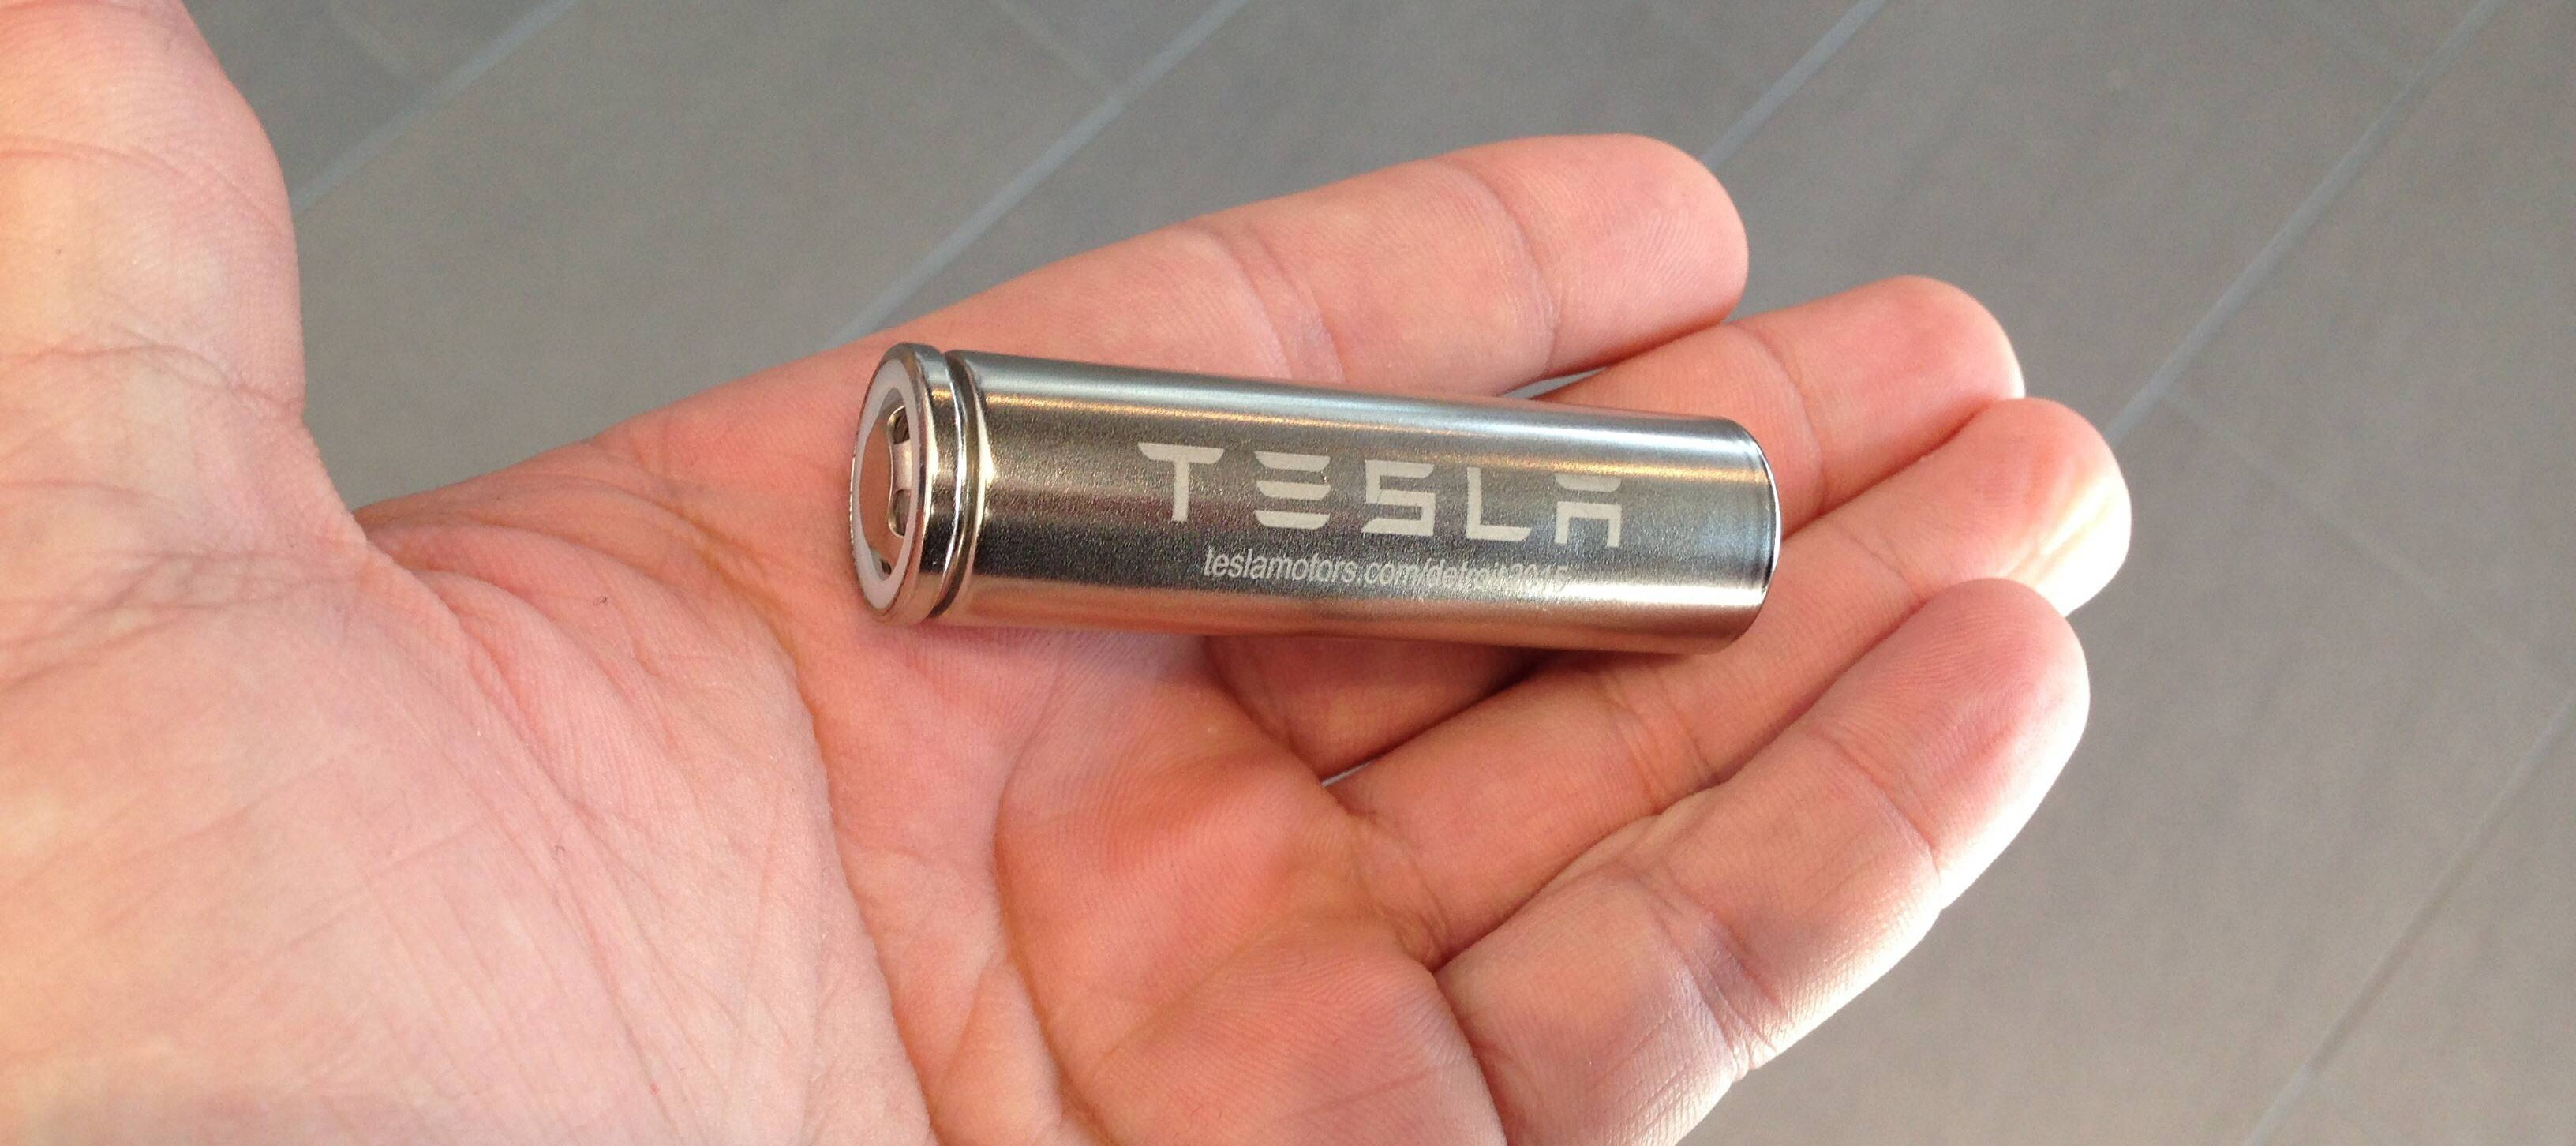 Tesla battery degradation at less than 10% after over 160,000 miles, according to latest data